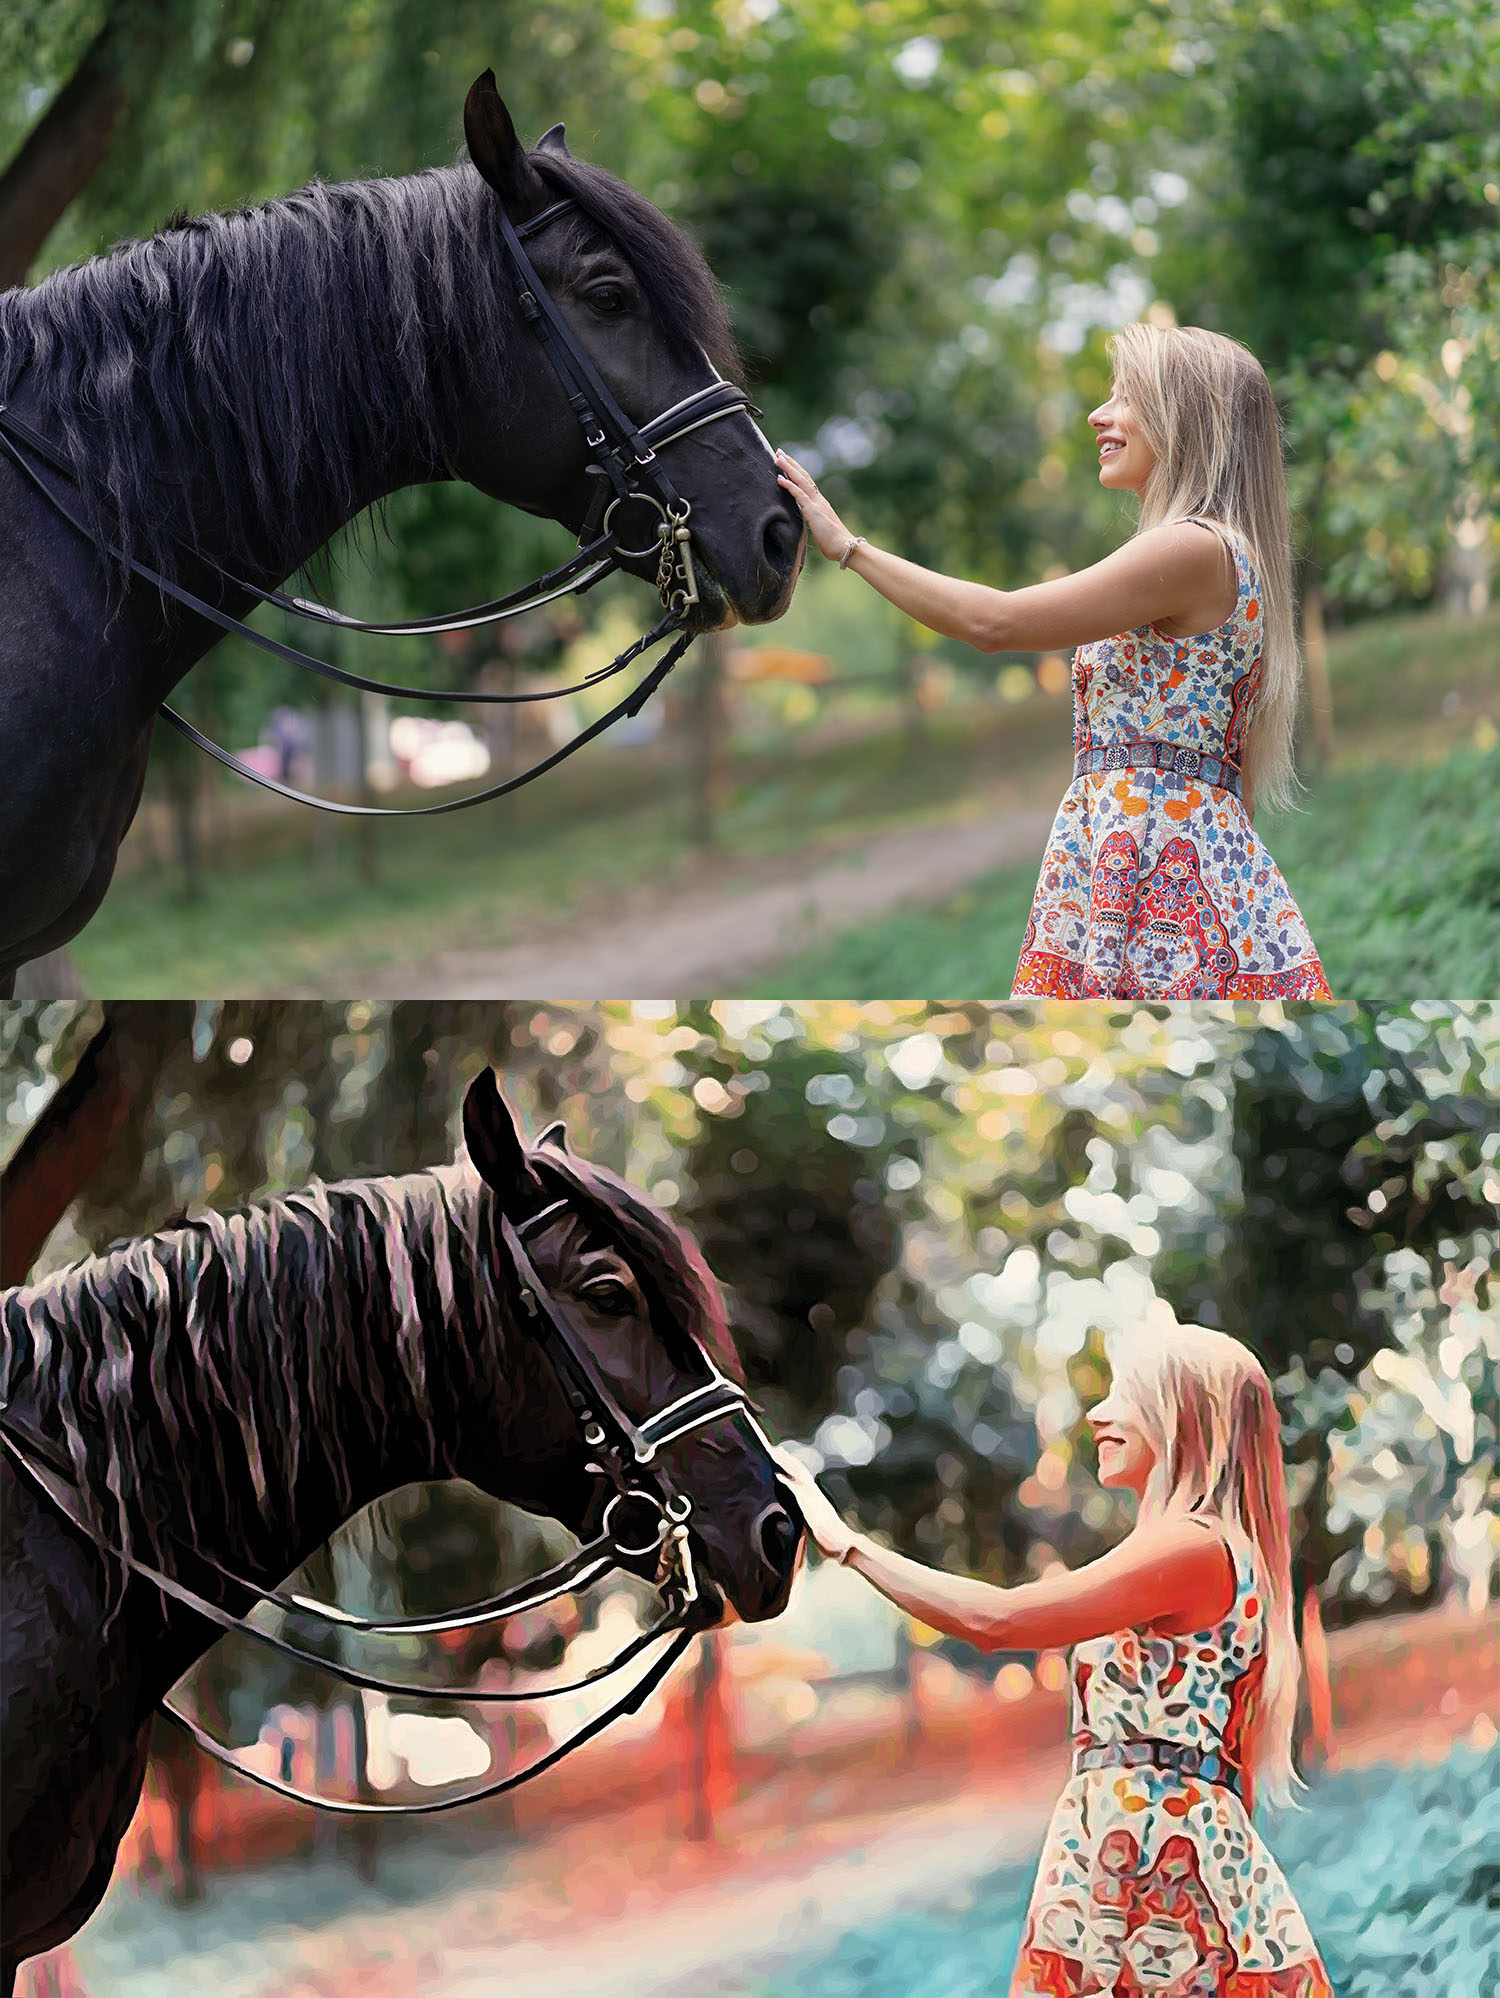 Before and after images of a woman patting a horse's nose